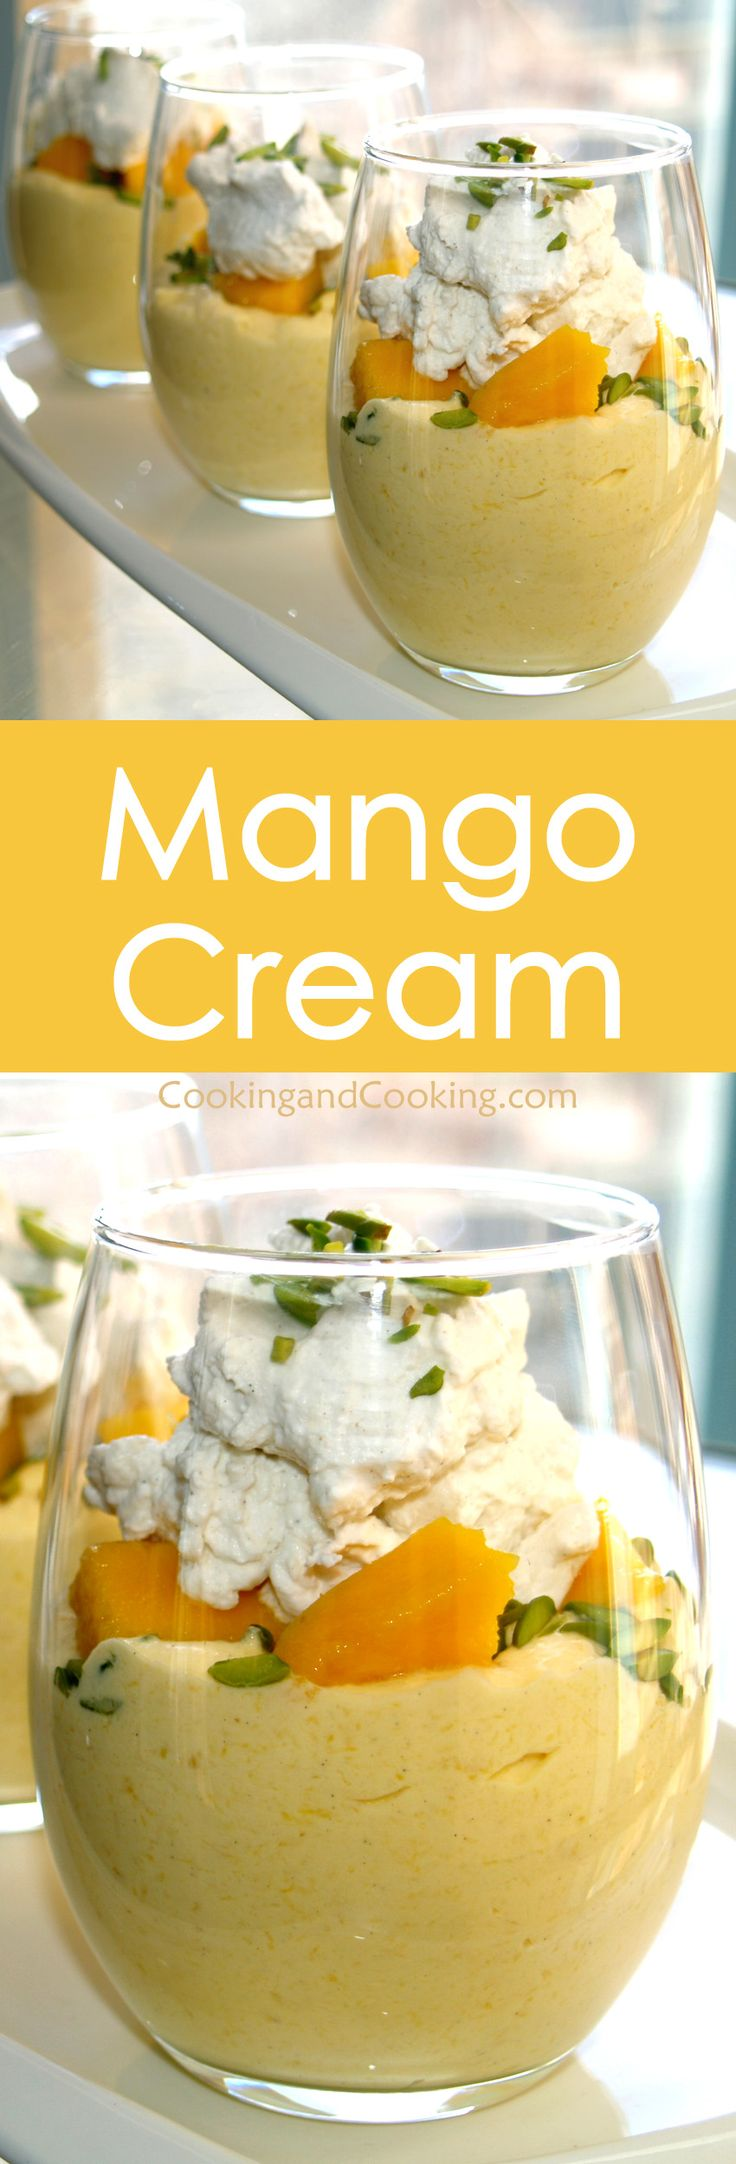 Mango Cream Recipe                                                                                                                                                                                 More